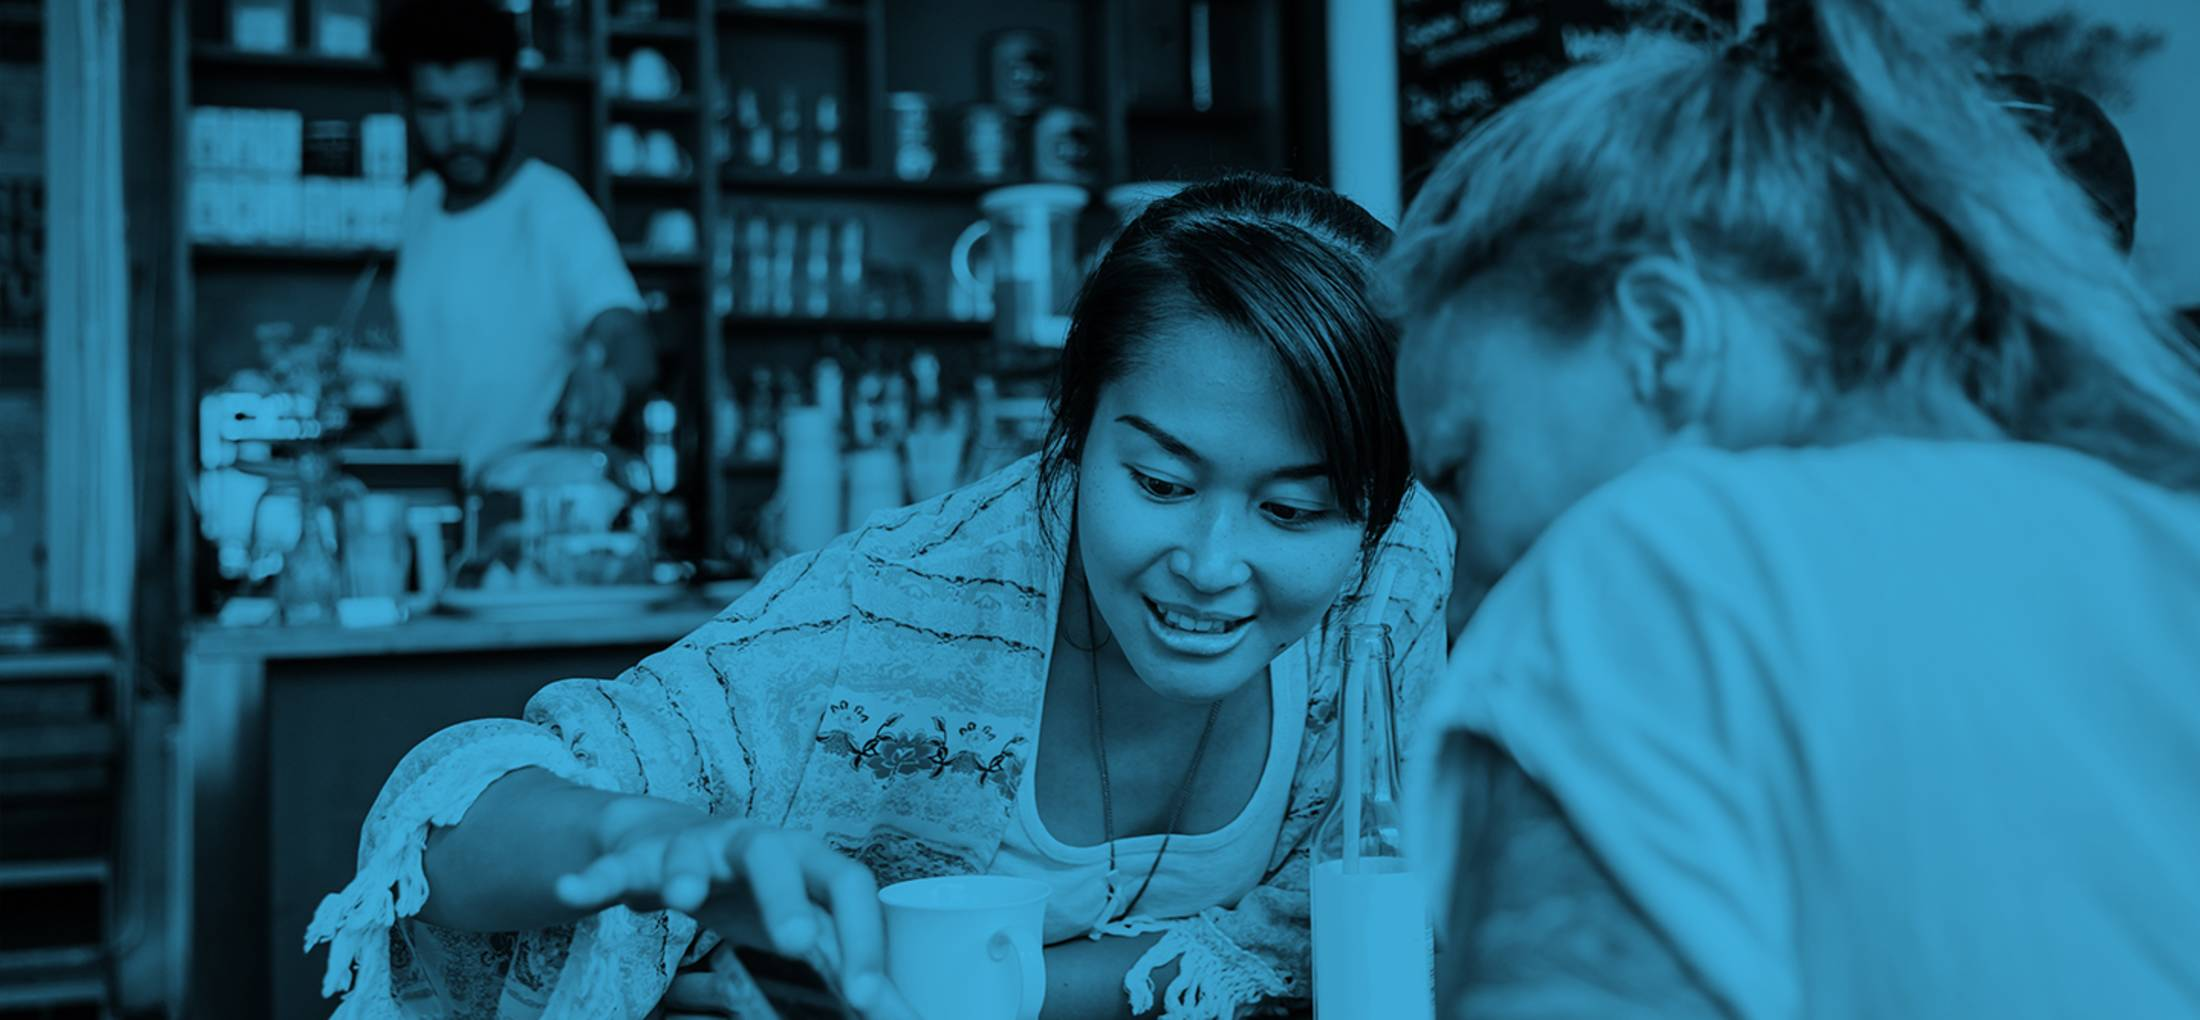 Two women at a cafe looking at a mobile phone